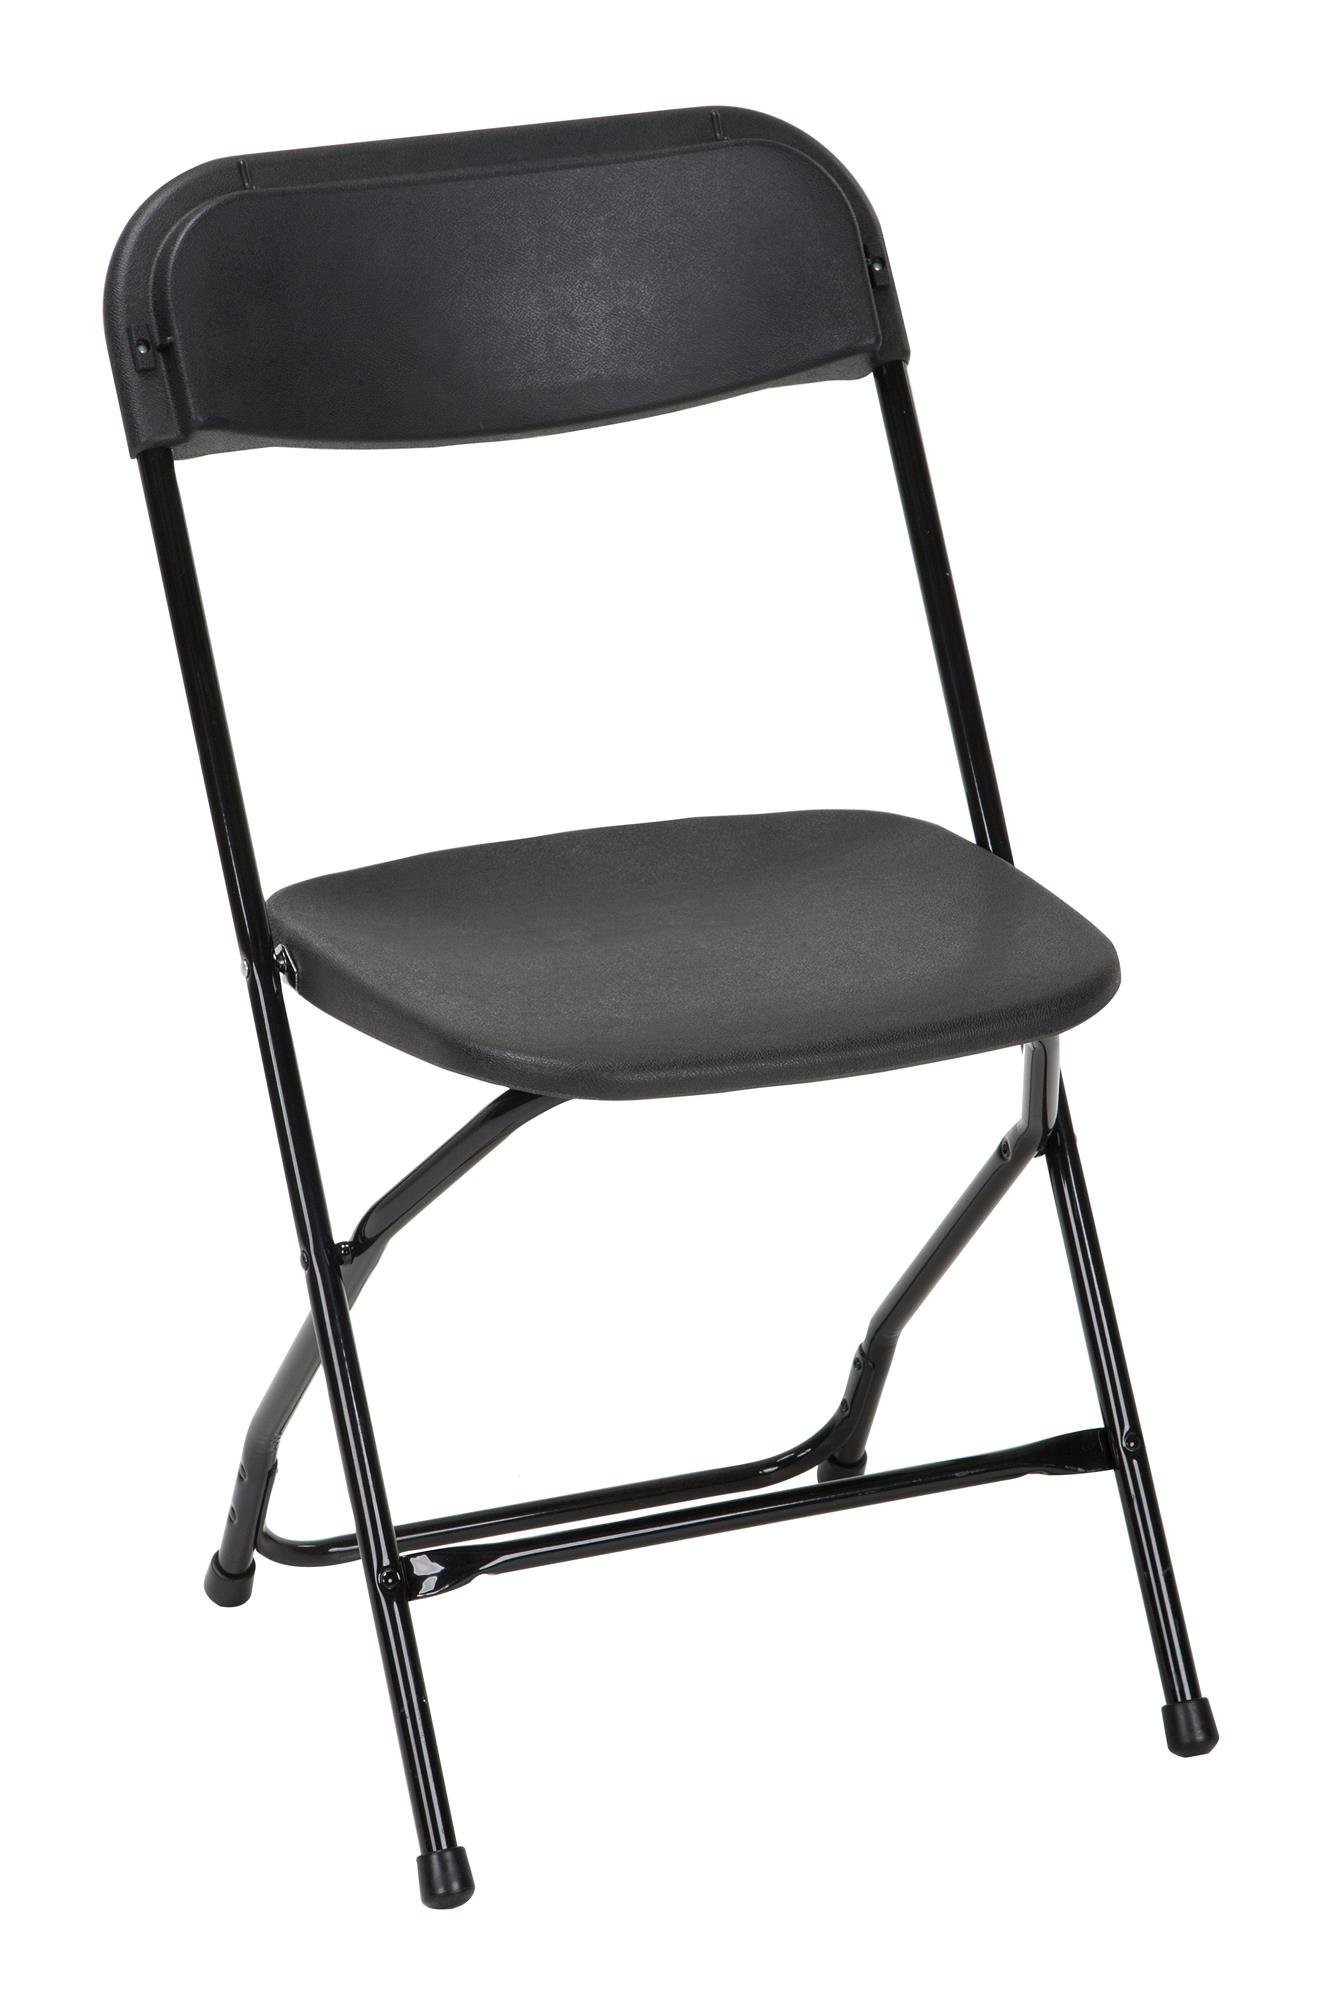 Cosco Commercial Heavy Duty, Injection Mold Folding Chair, Black, 8-Pack